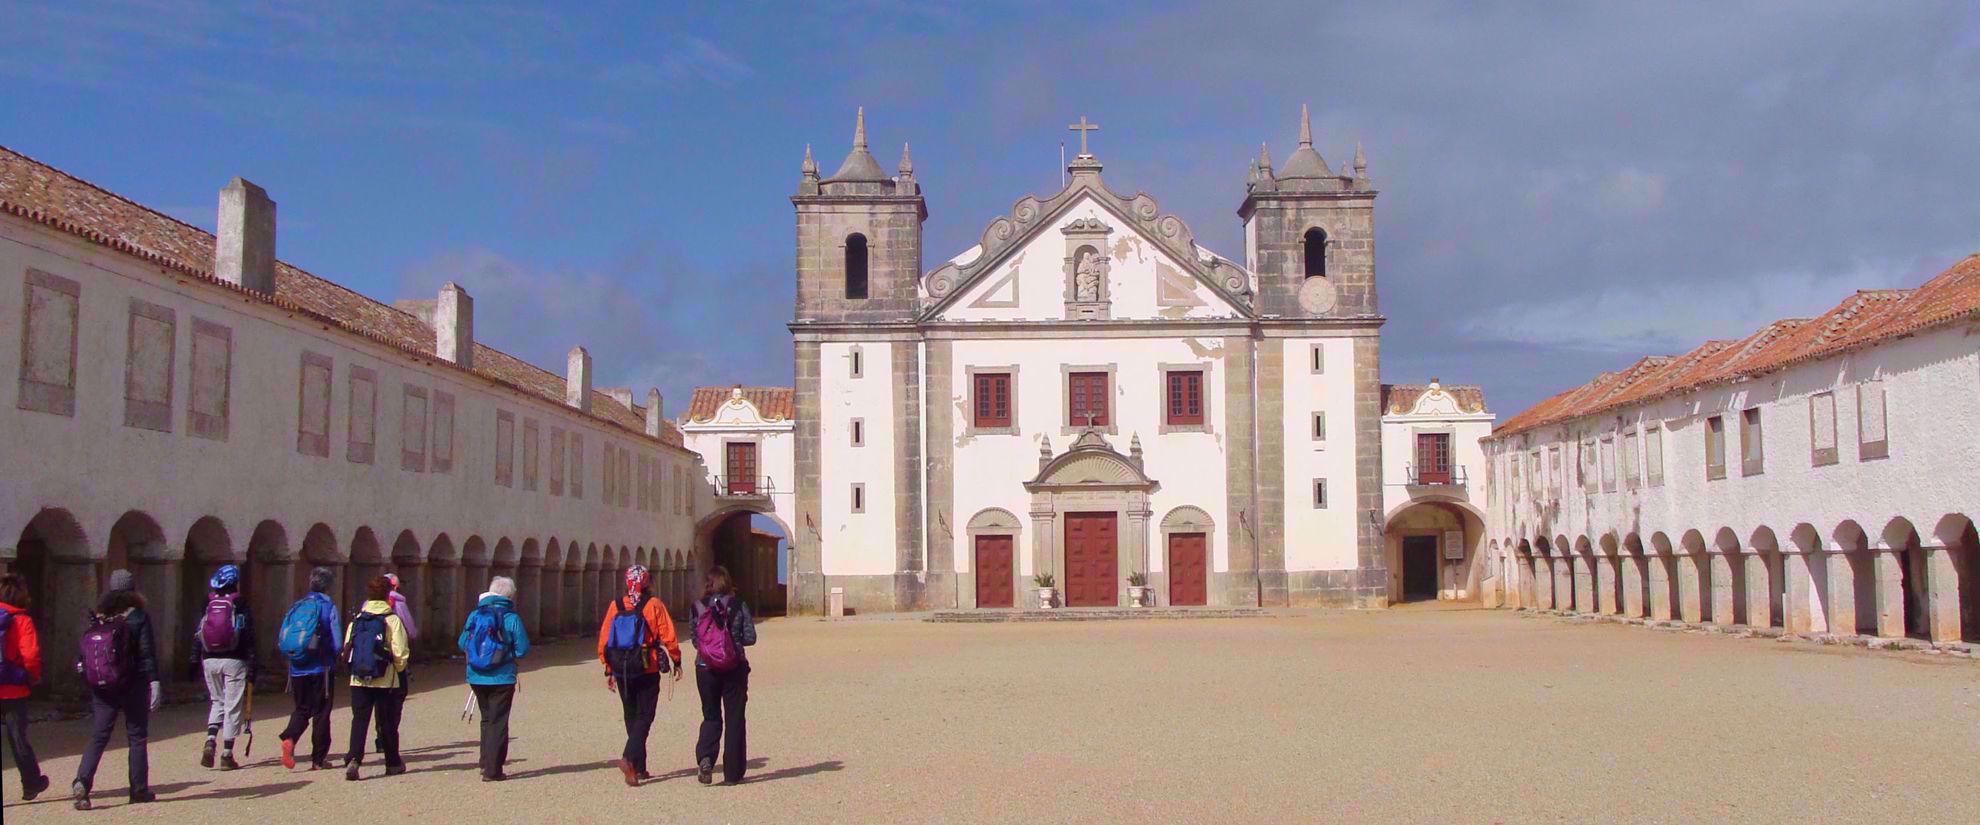 discovering stunning architecture in portugal on women's group tour